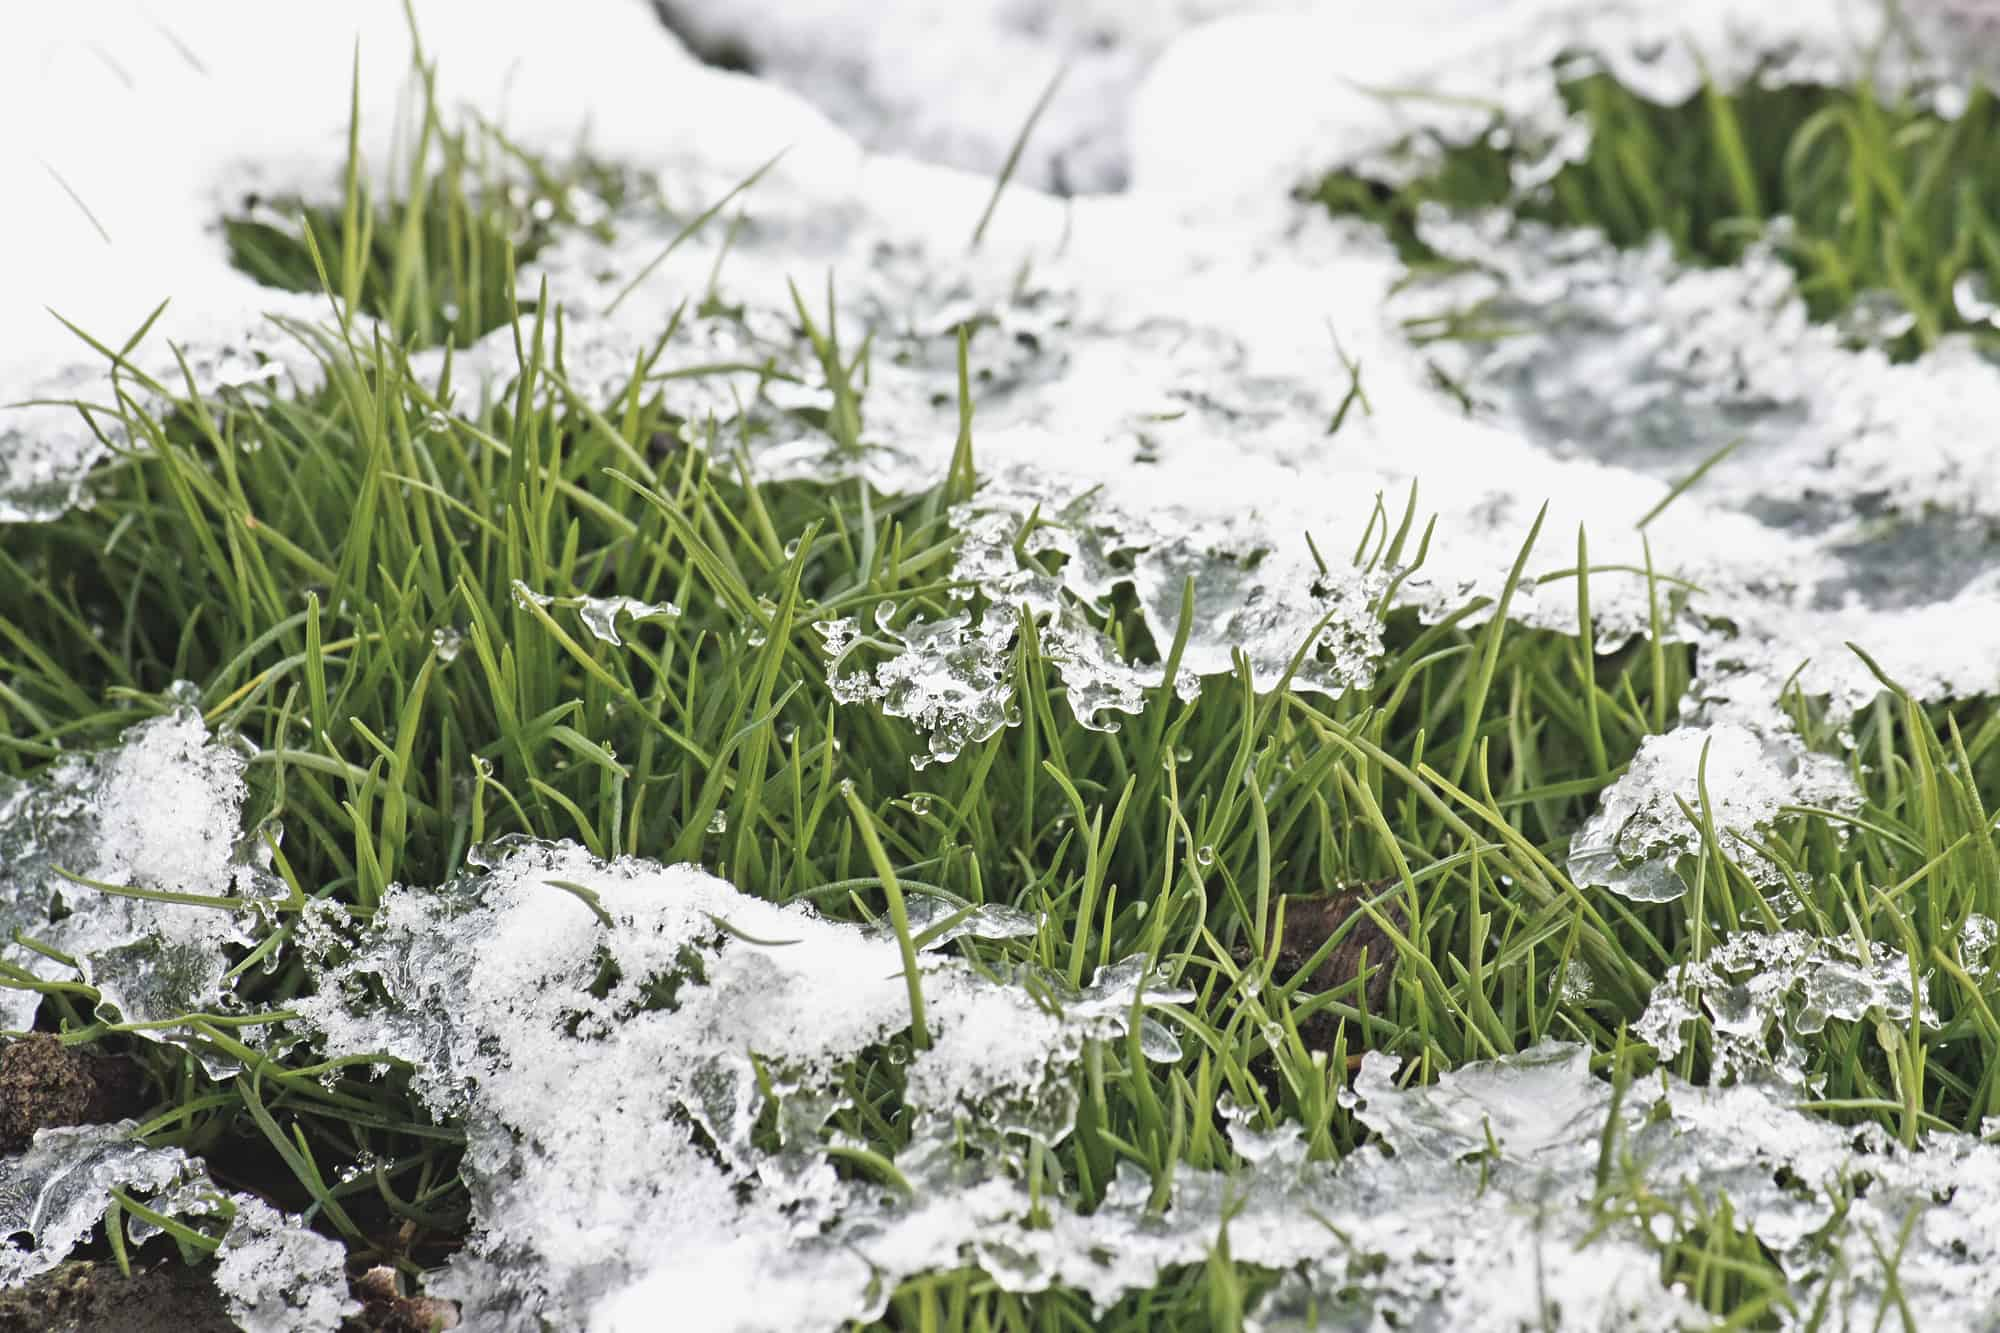 Winter Lawn Care Tips - Is There Anything You Can Do? 2